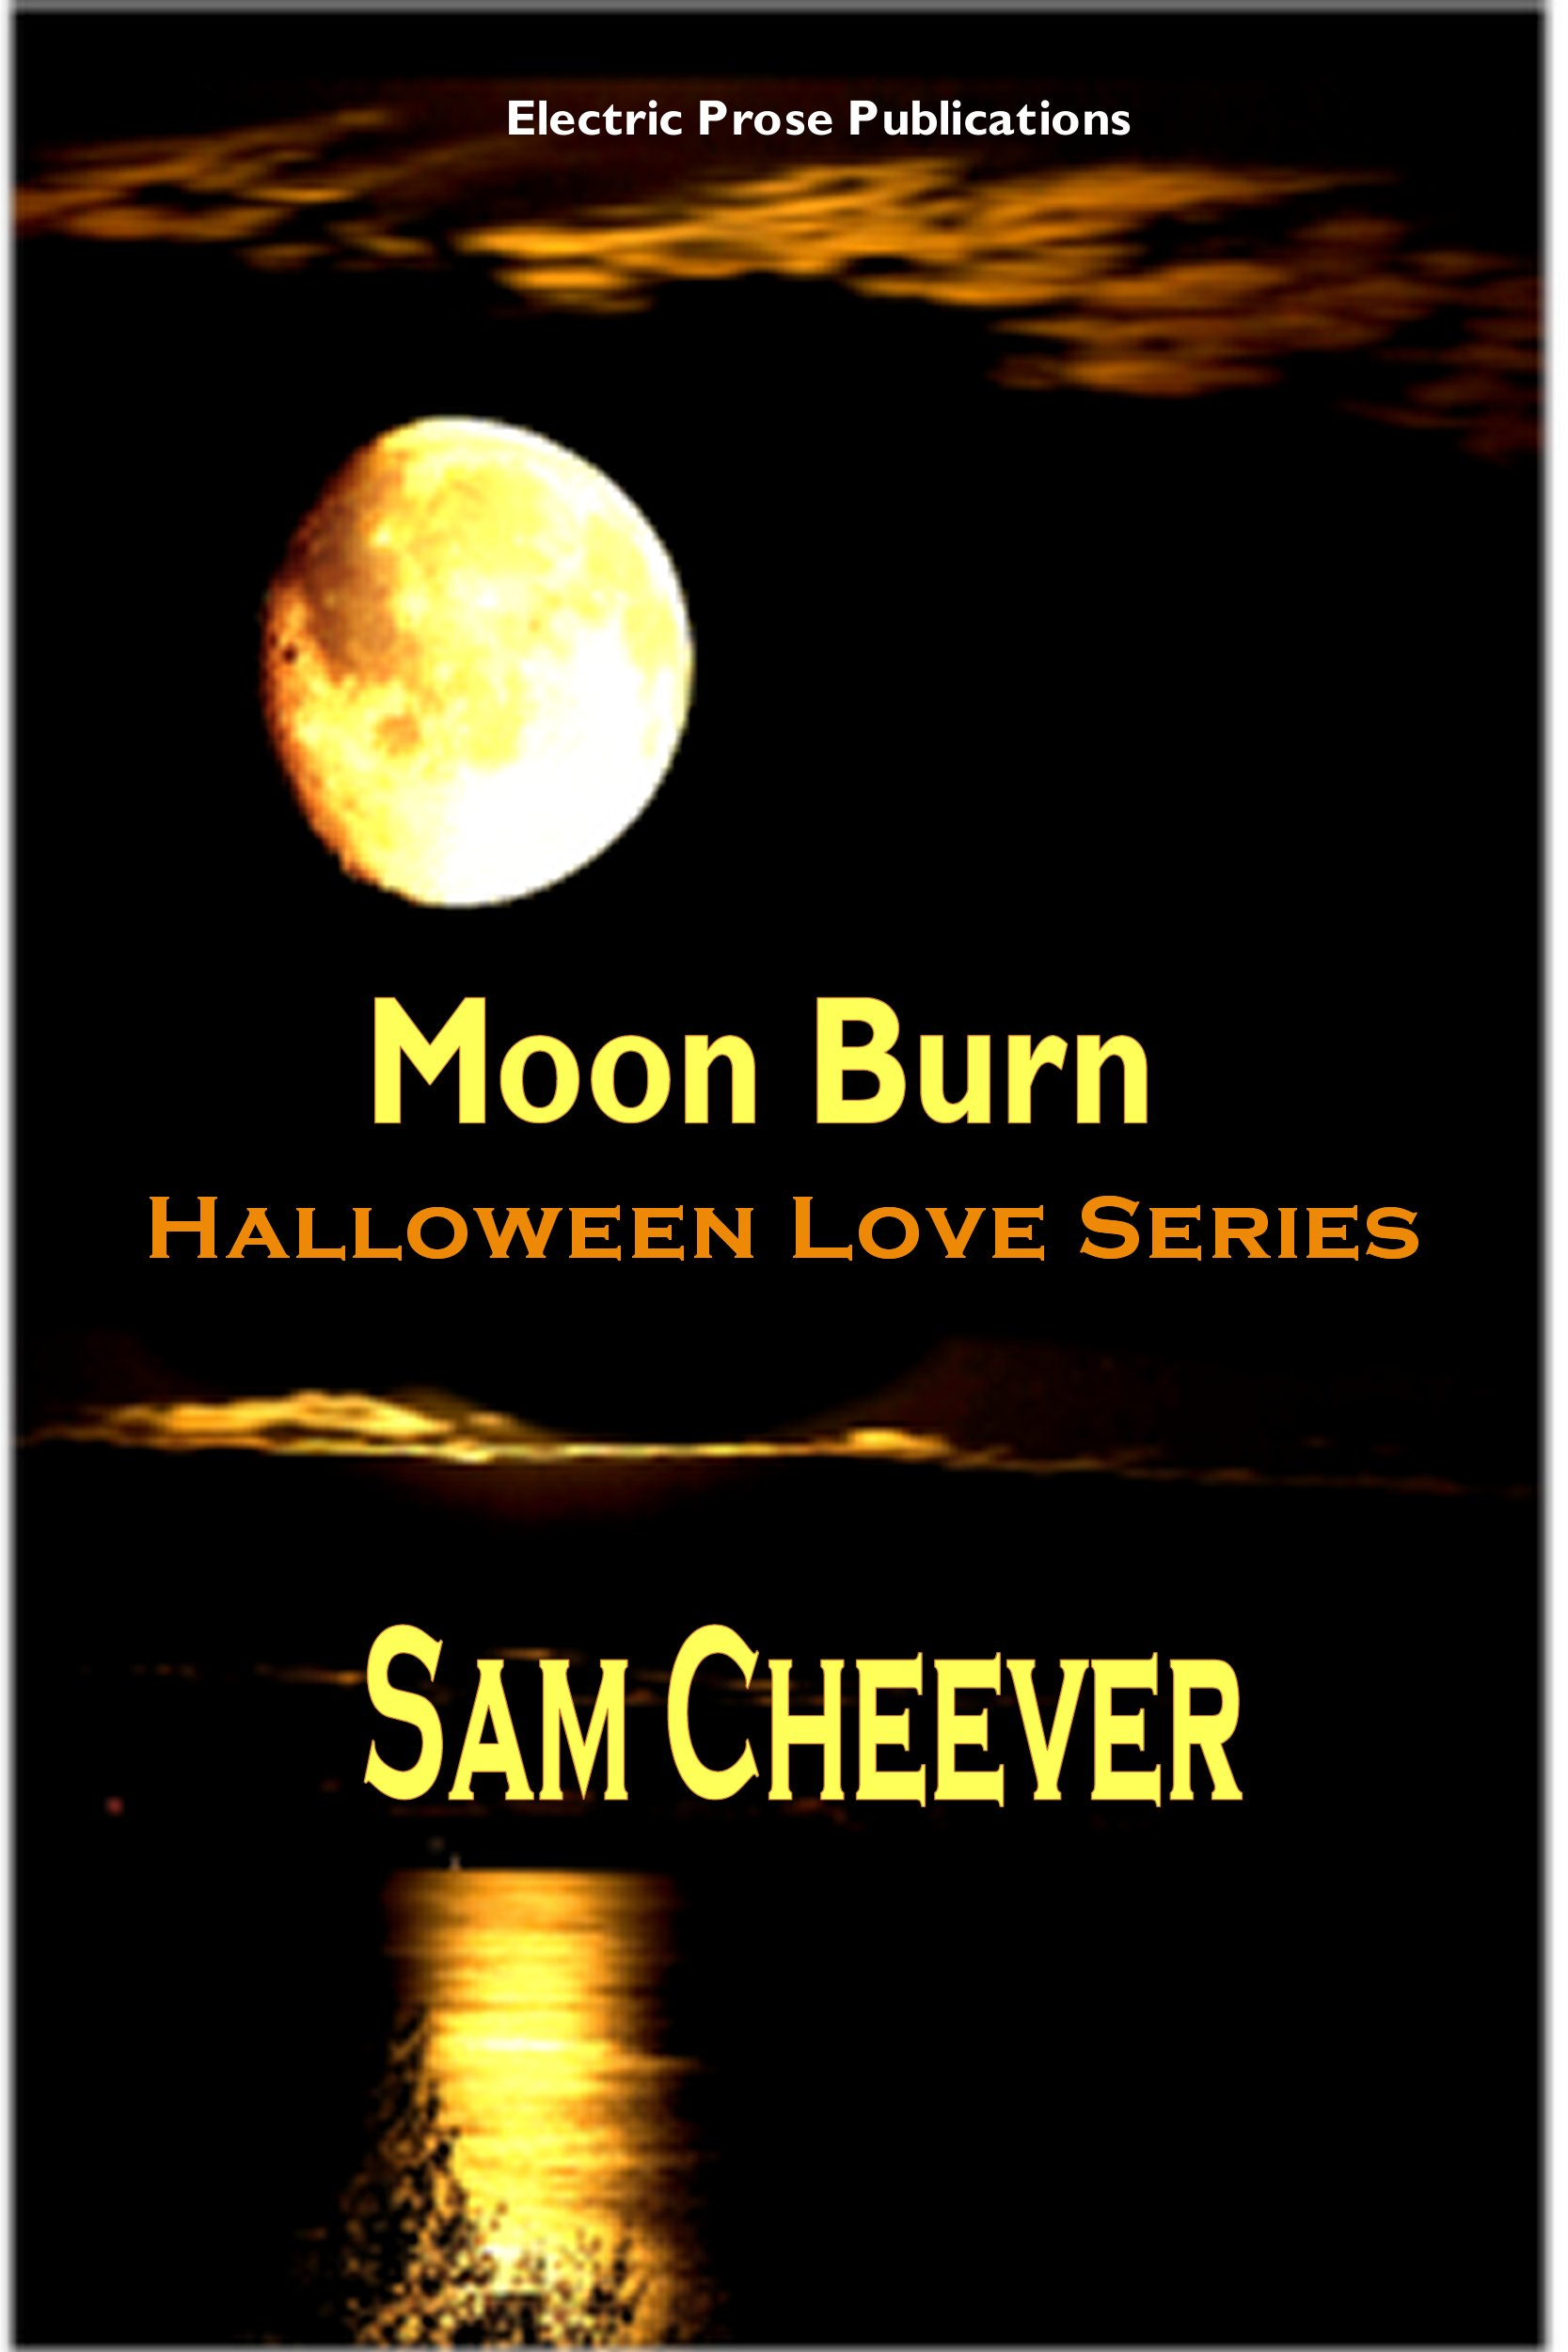 Sam Cheever - Moon Burn